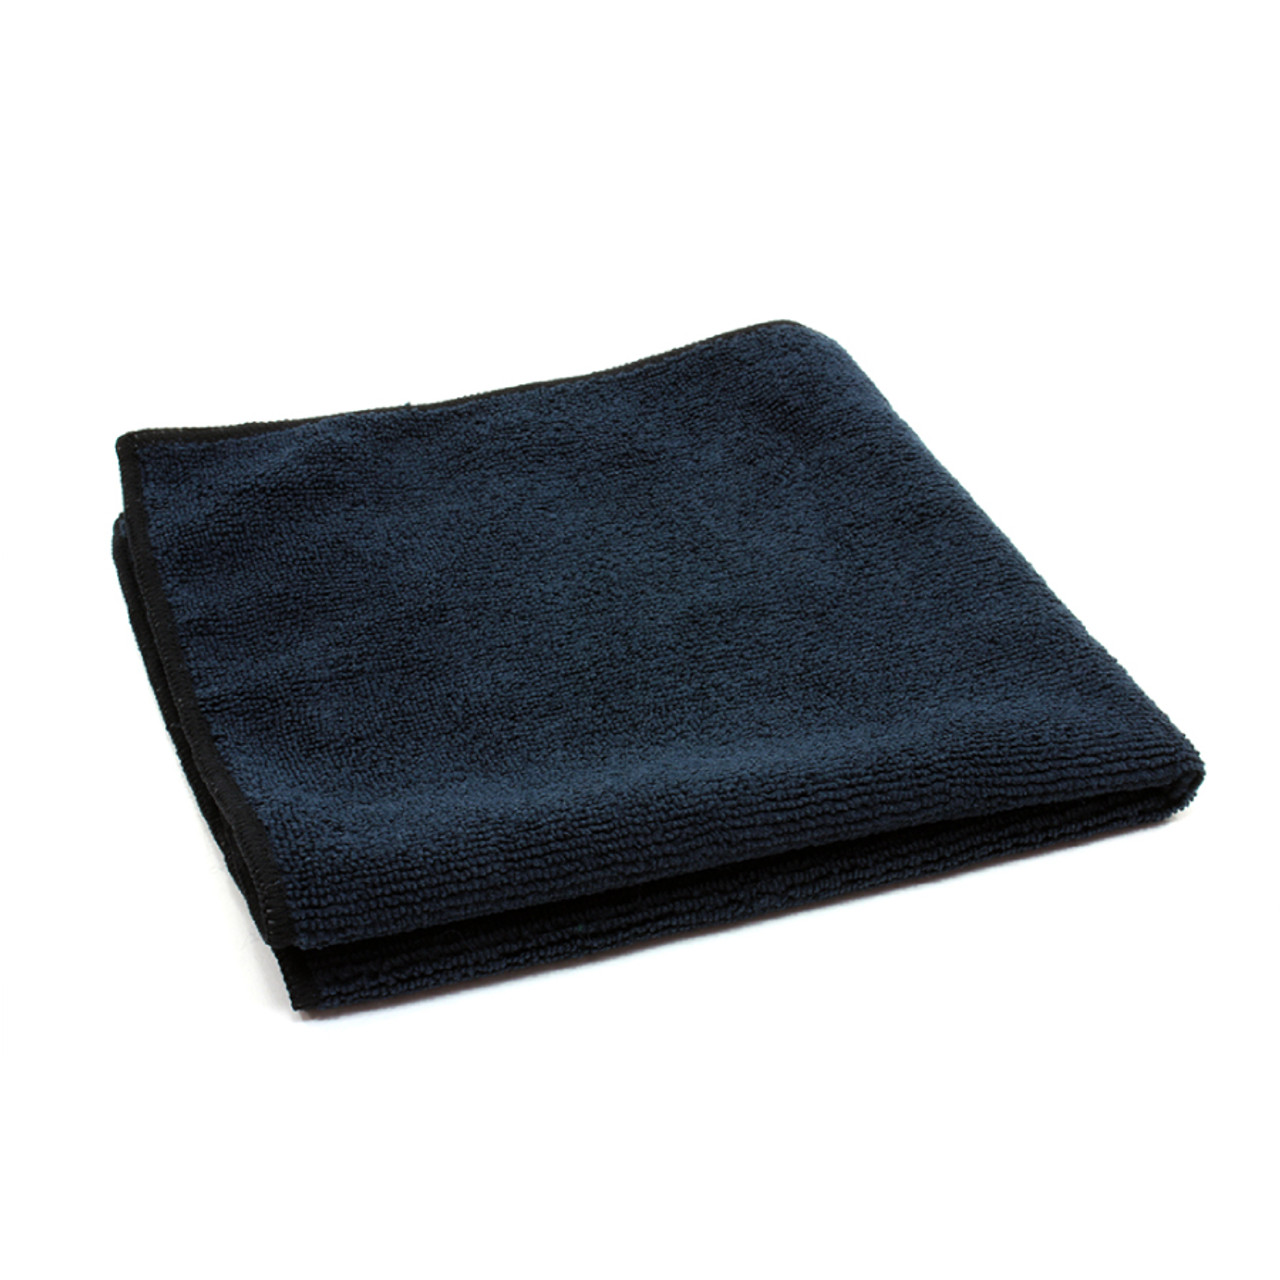 240 navy microfiber towels new cleaning cloths bulk 16x16 manufacturers sale